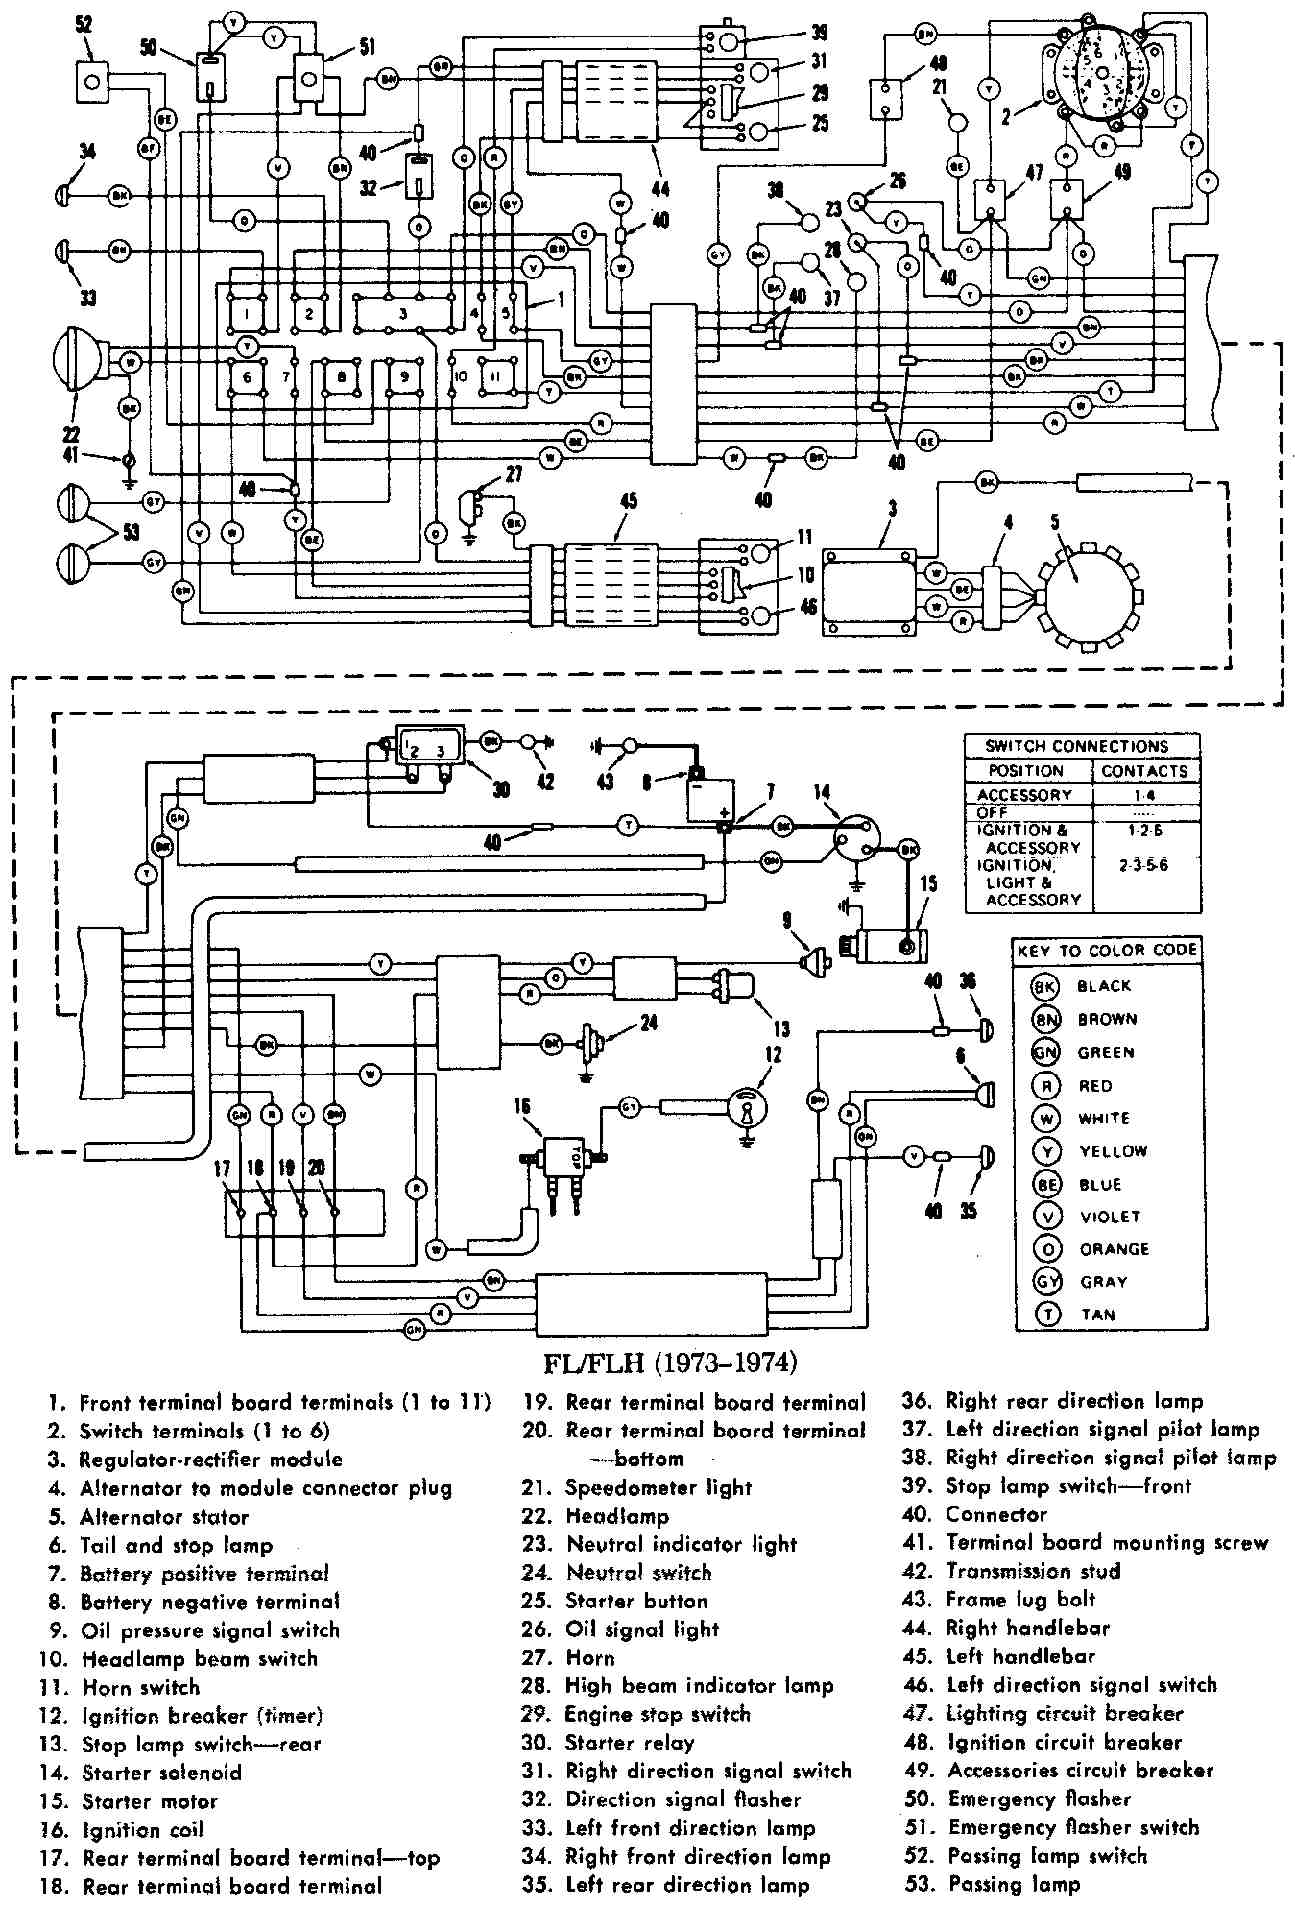 harley electra glide starter wiring trusted wiring diagram ford wiring diagrams flhtcui wiring diagram [ 1295 x 1907 Pixel ]